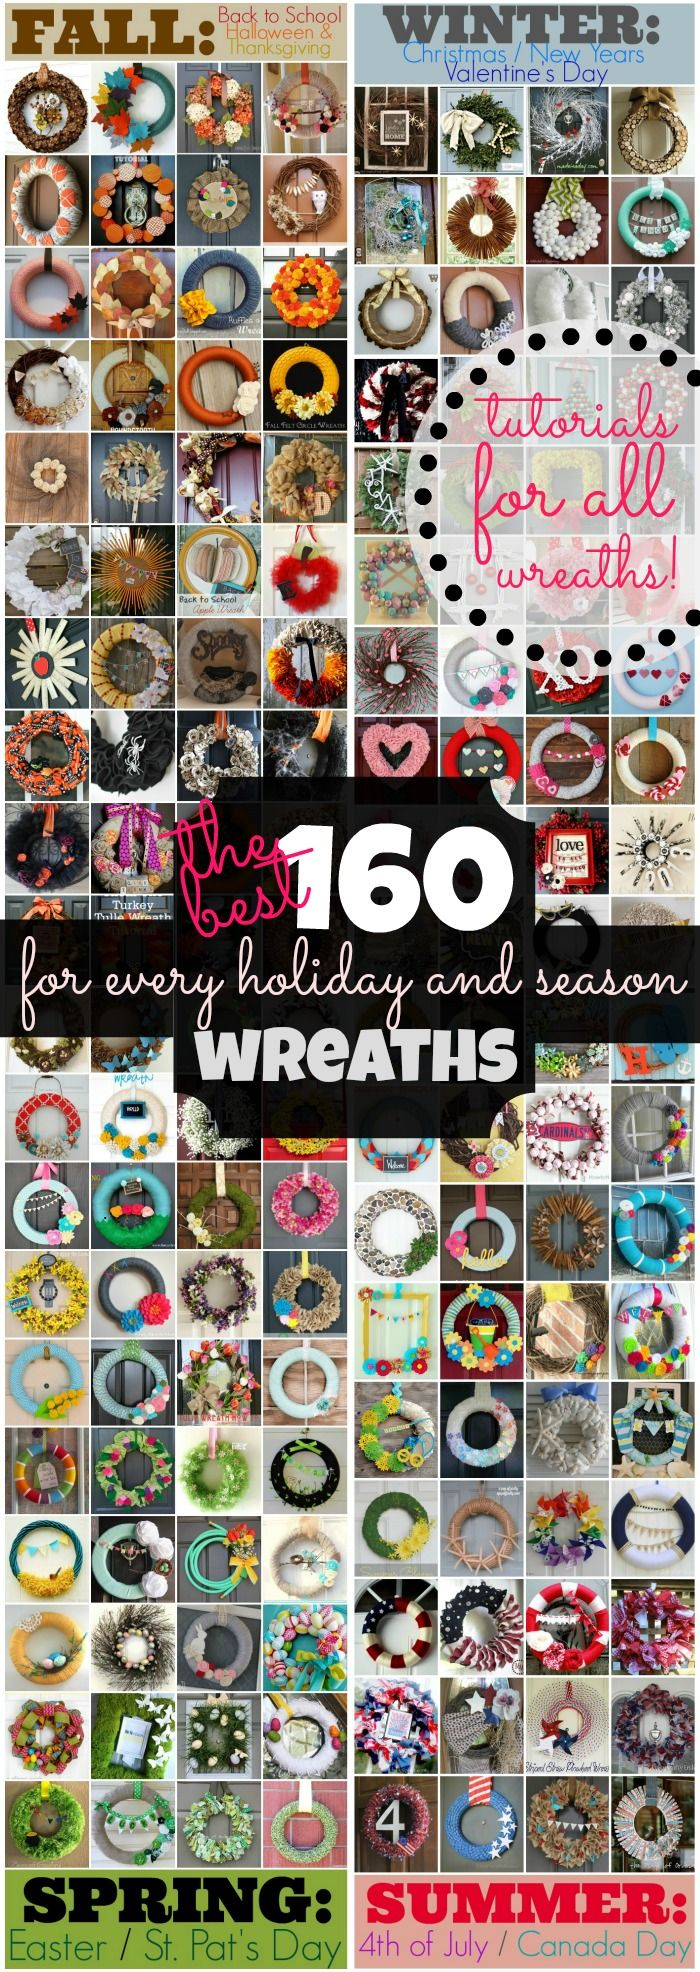 A list of 160 of the best wreath tutorials - 40 for every season, with all major holidays included. Get ready to be inspired!